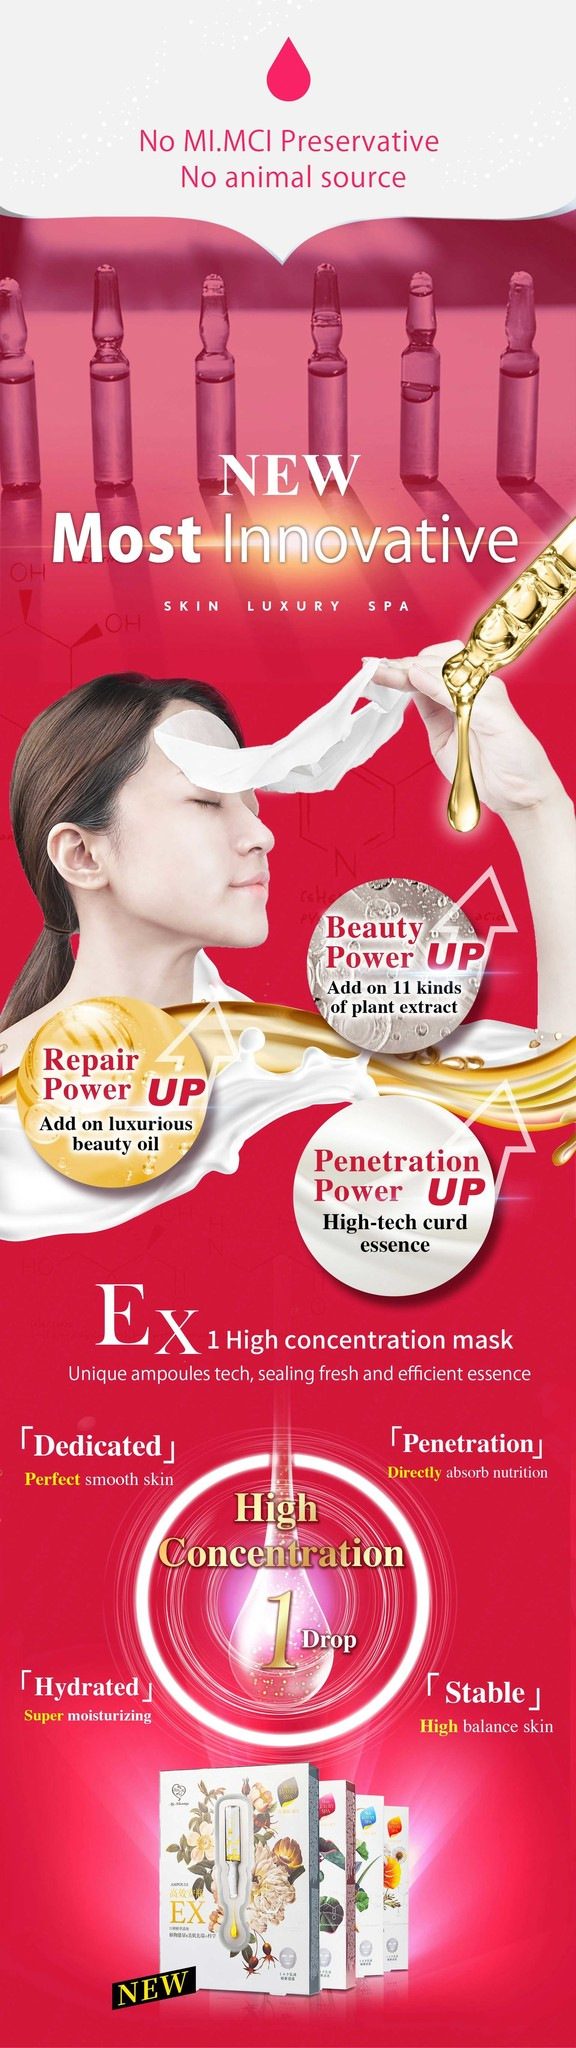 Extra Brightening Ampoule Mask-3